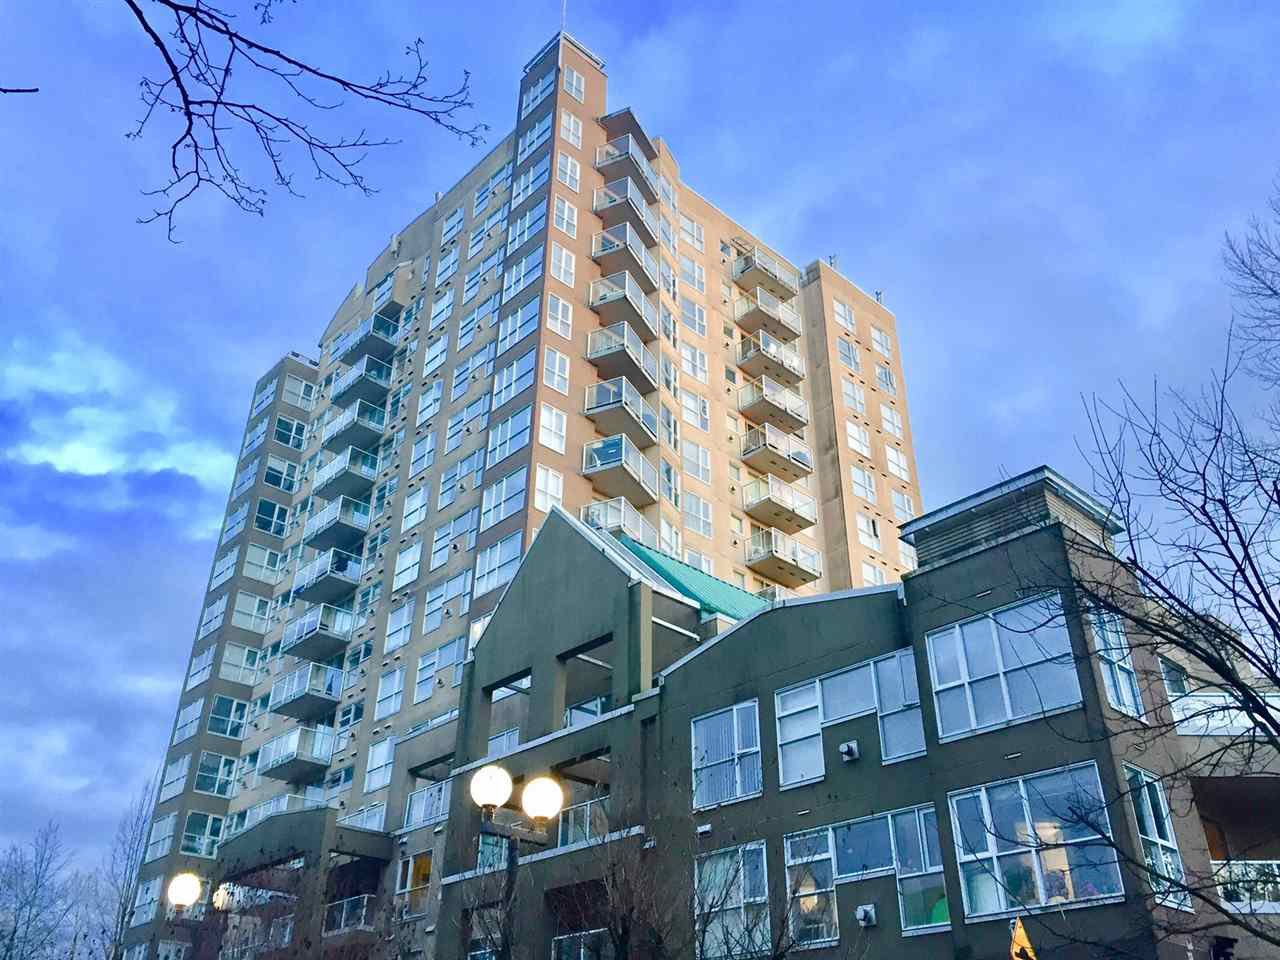 """Main Photo: 307 9830 WHALLEY Boulevard in Surrey: Whalley Condo for sale in """"KING GEORGE PARK"""" (North Surrey)  : MLS®# R2237466"""